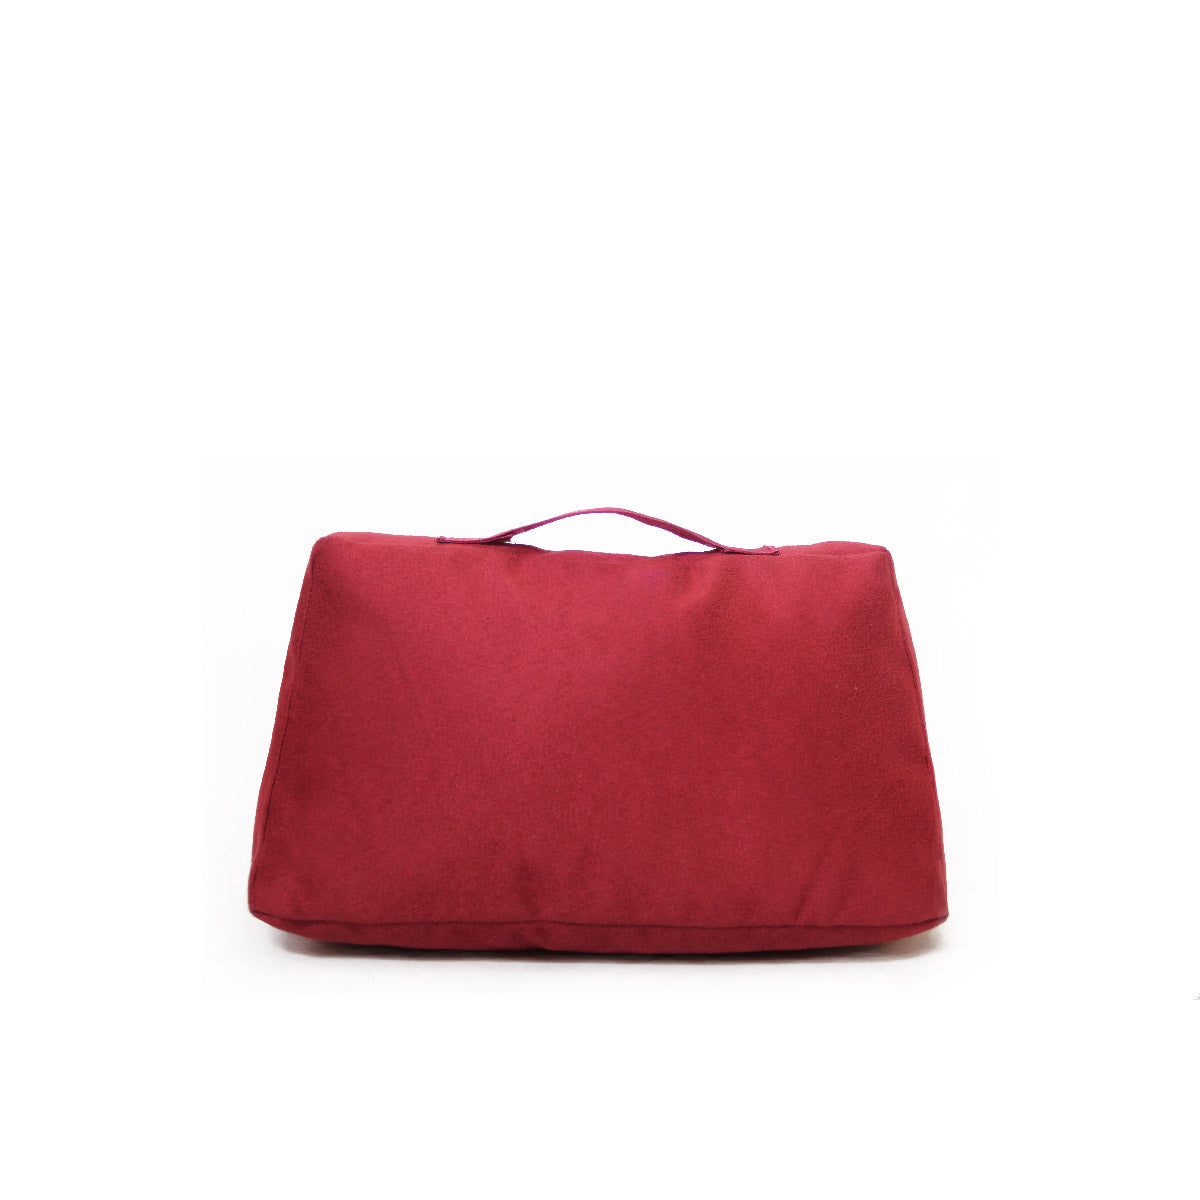 92b34892d393 ... sale bag pillows hermes kelly 32 red ruby b124c 41066 wholesale hermes  red kelly 28 togo leather ...